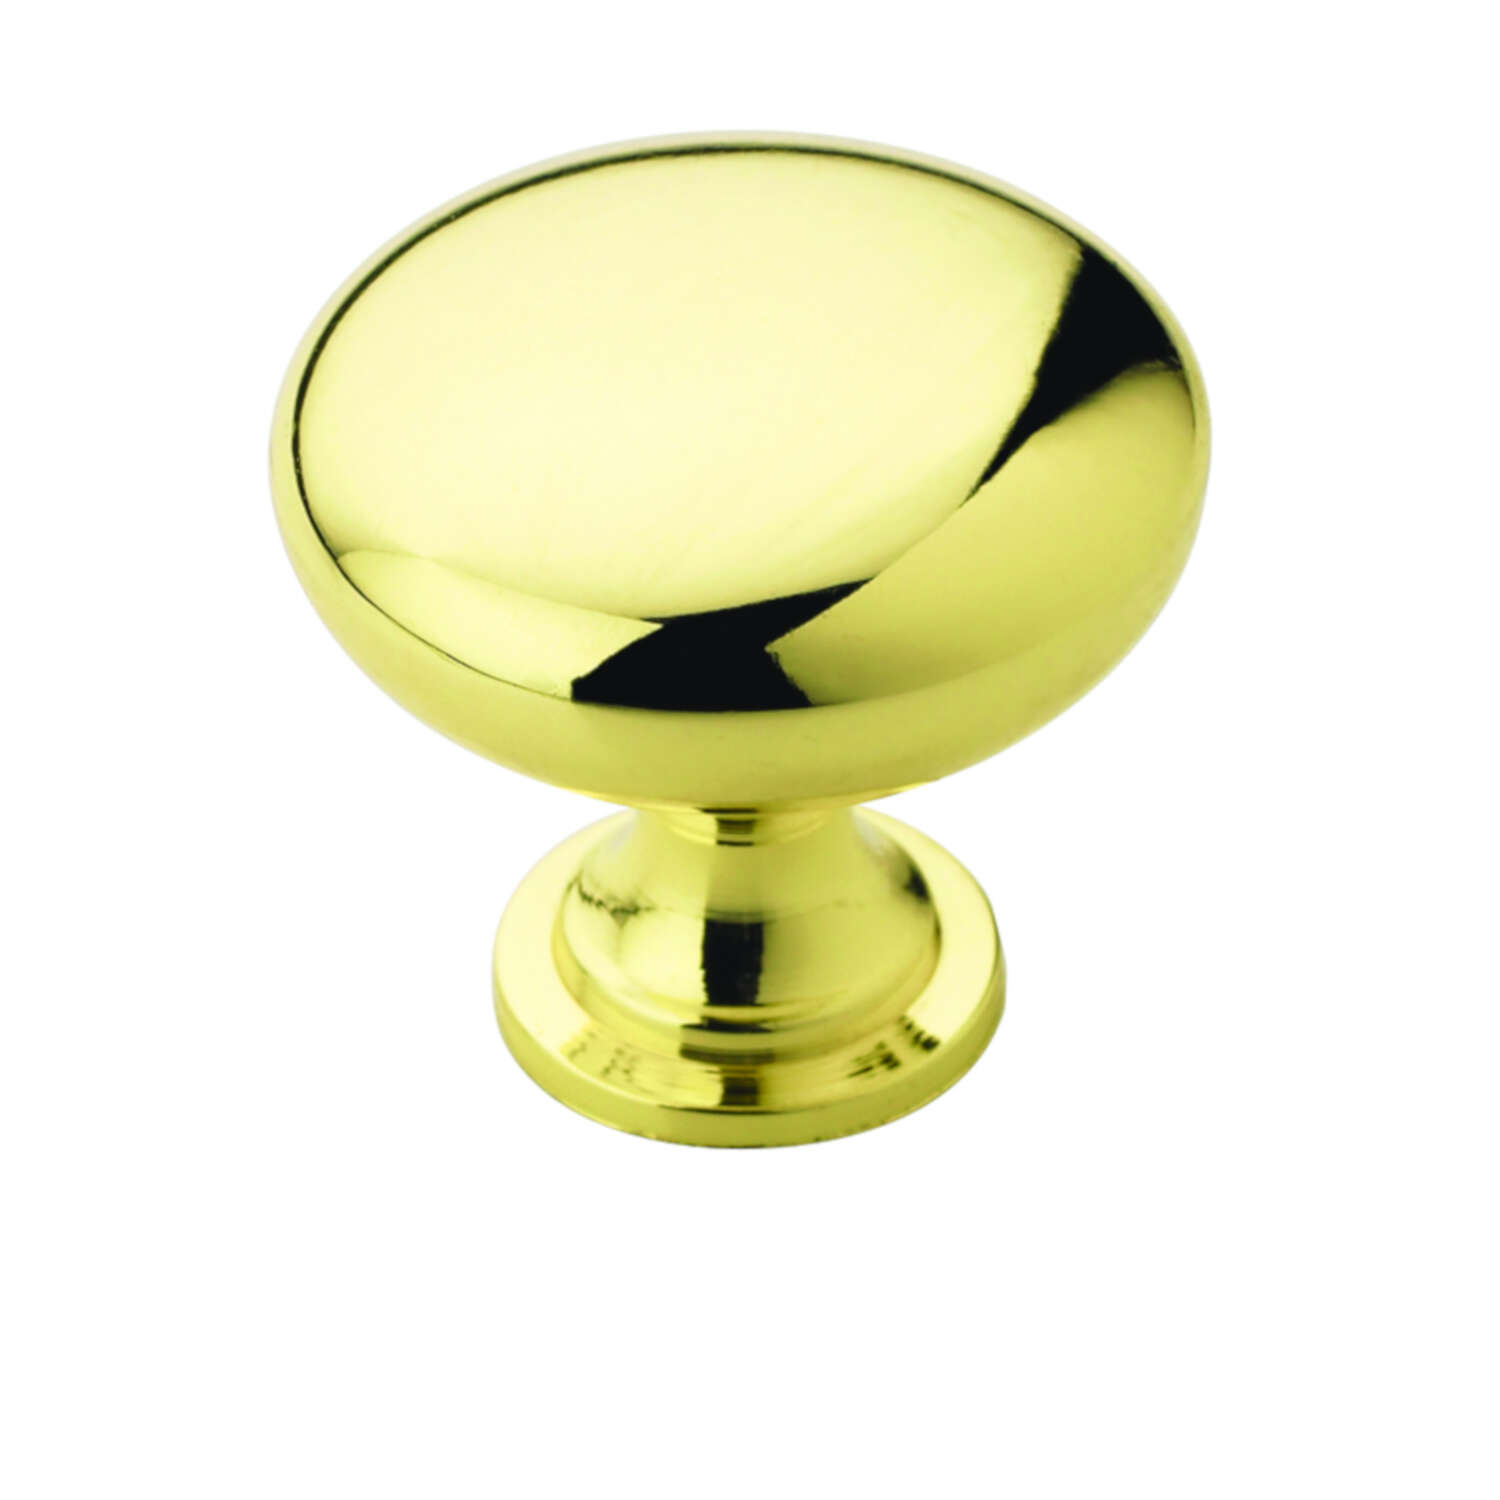 Amerock  Allison  Round  Cabinet Knob  1-1/4 in. Dia. 1-1/8 in. Polished Brass  2 pk